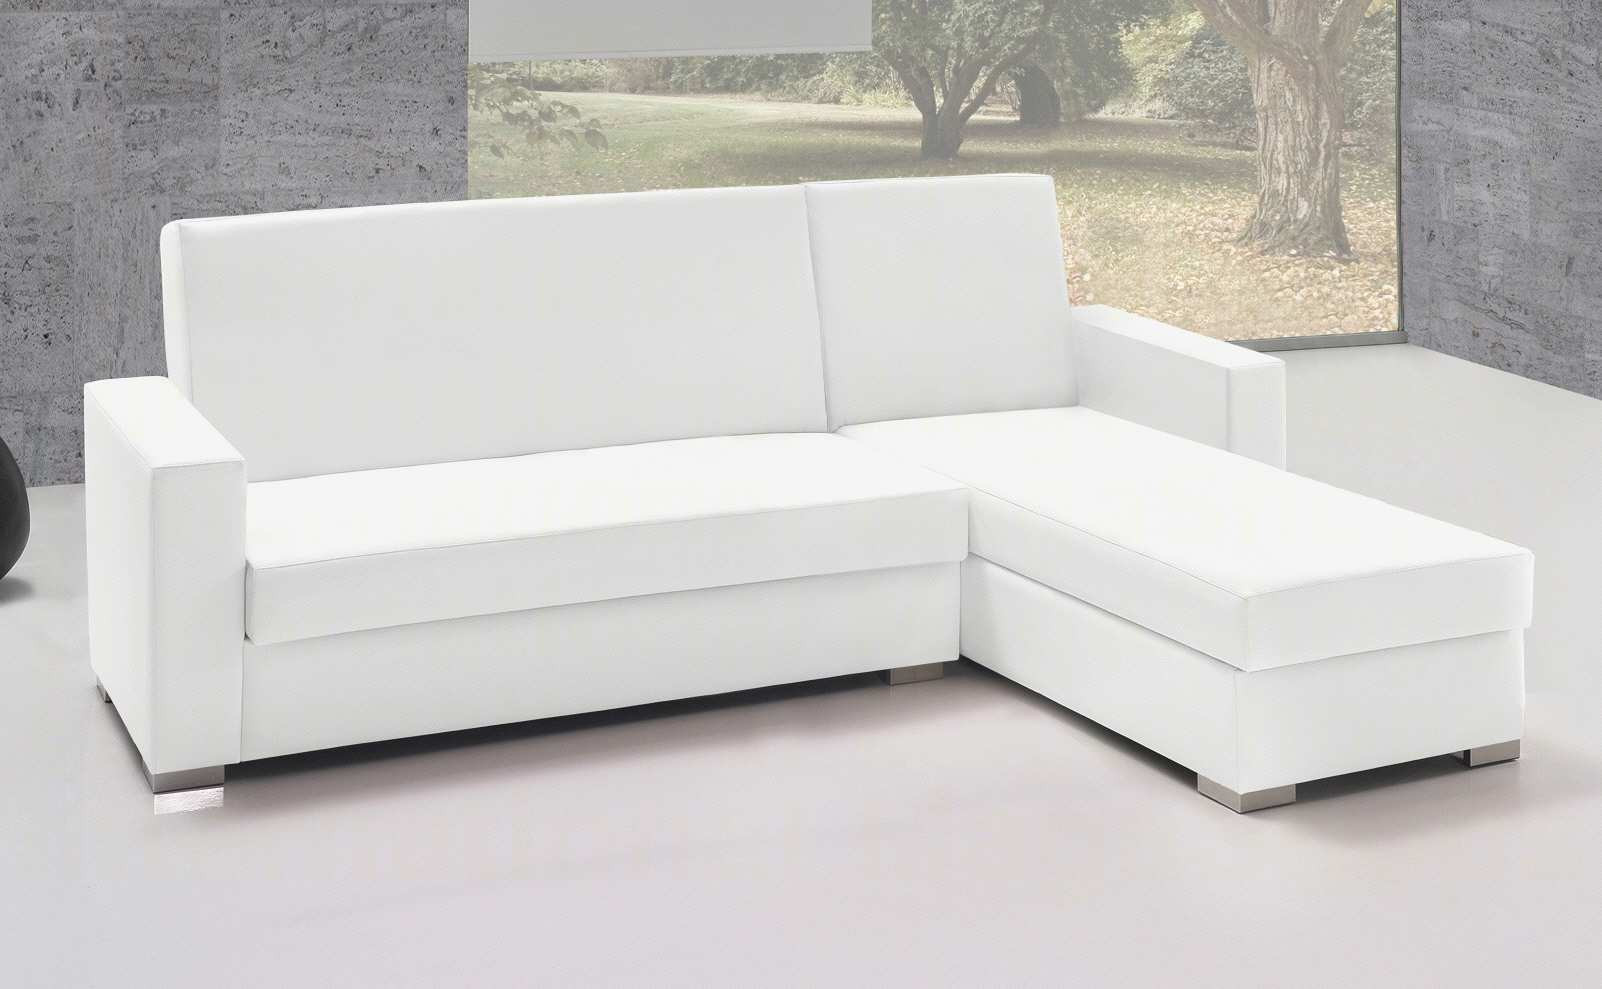 Chaise Longue Cama Baratos Magnífica sofa Cama Chaise Longue Barato Madrid Of Chaise Longue Cama Baratos Contemporáneo sofá Cama Mesmerizar sofa Chaise Longue Cama Chaise